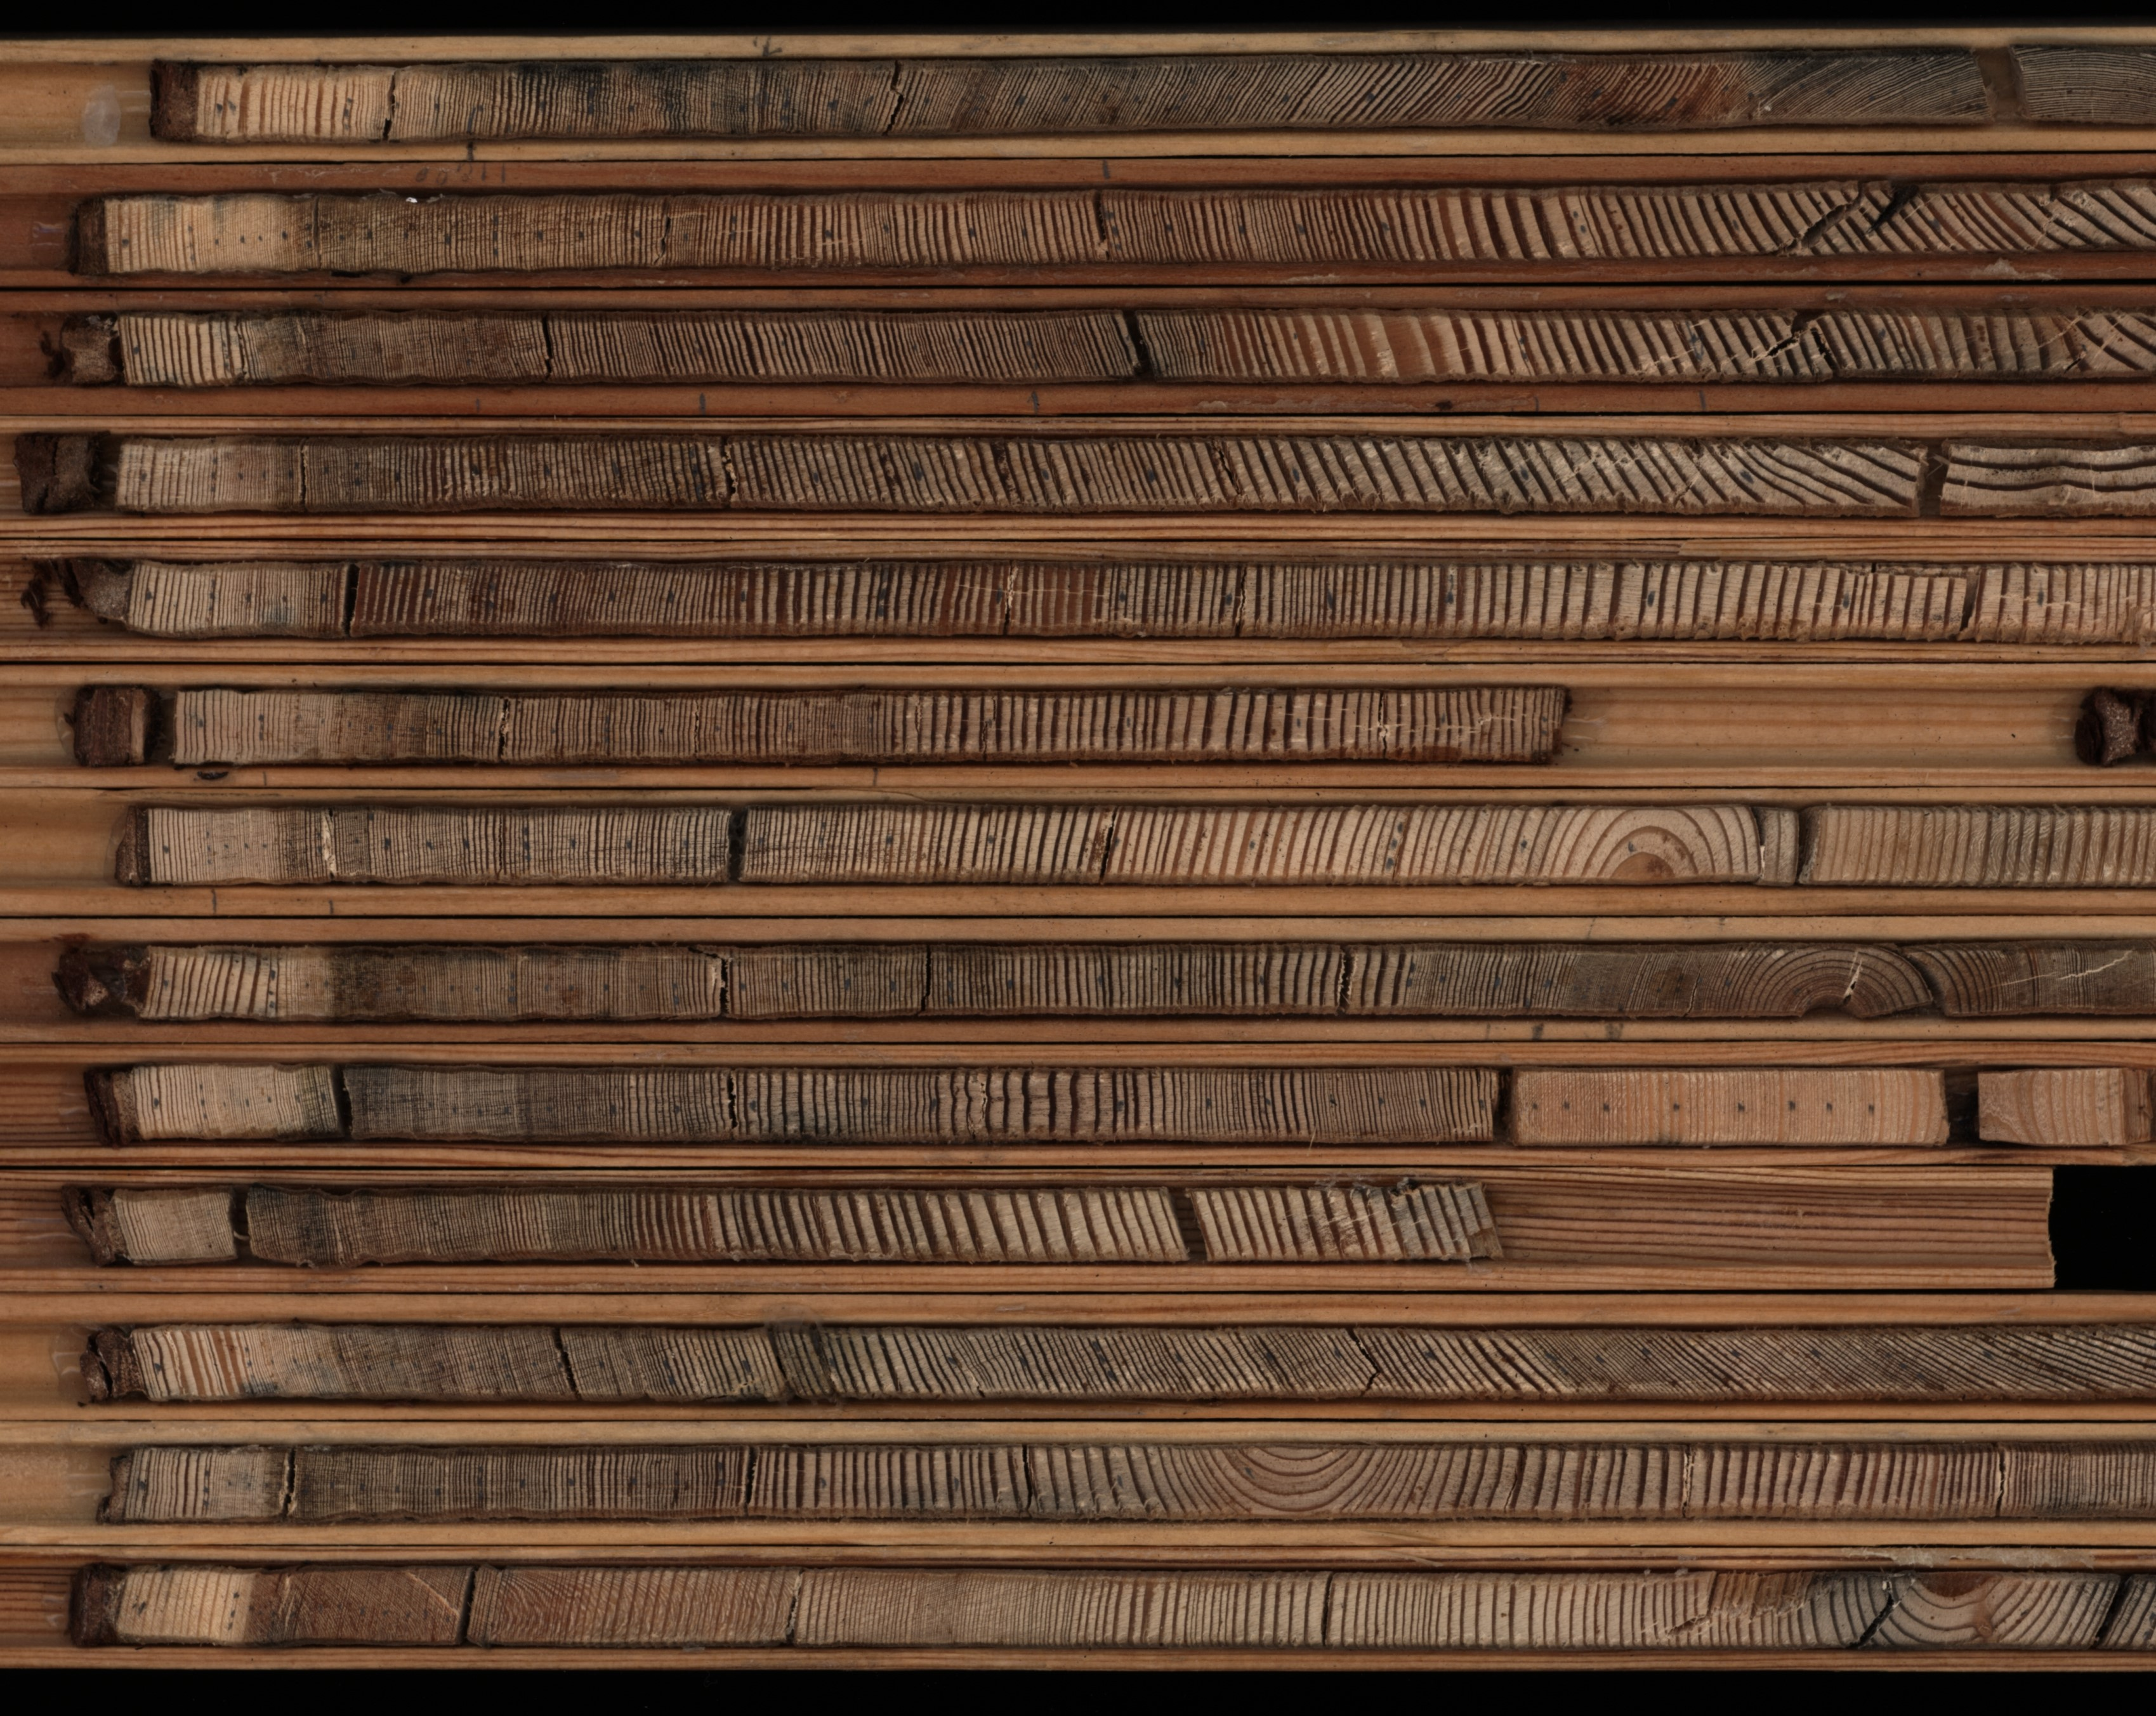 Tree rings collected from old-growth Dahurian larch trees. Trees grow one ring per year. Credit: Xianliang Zhang.